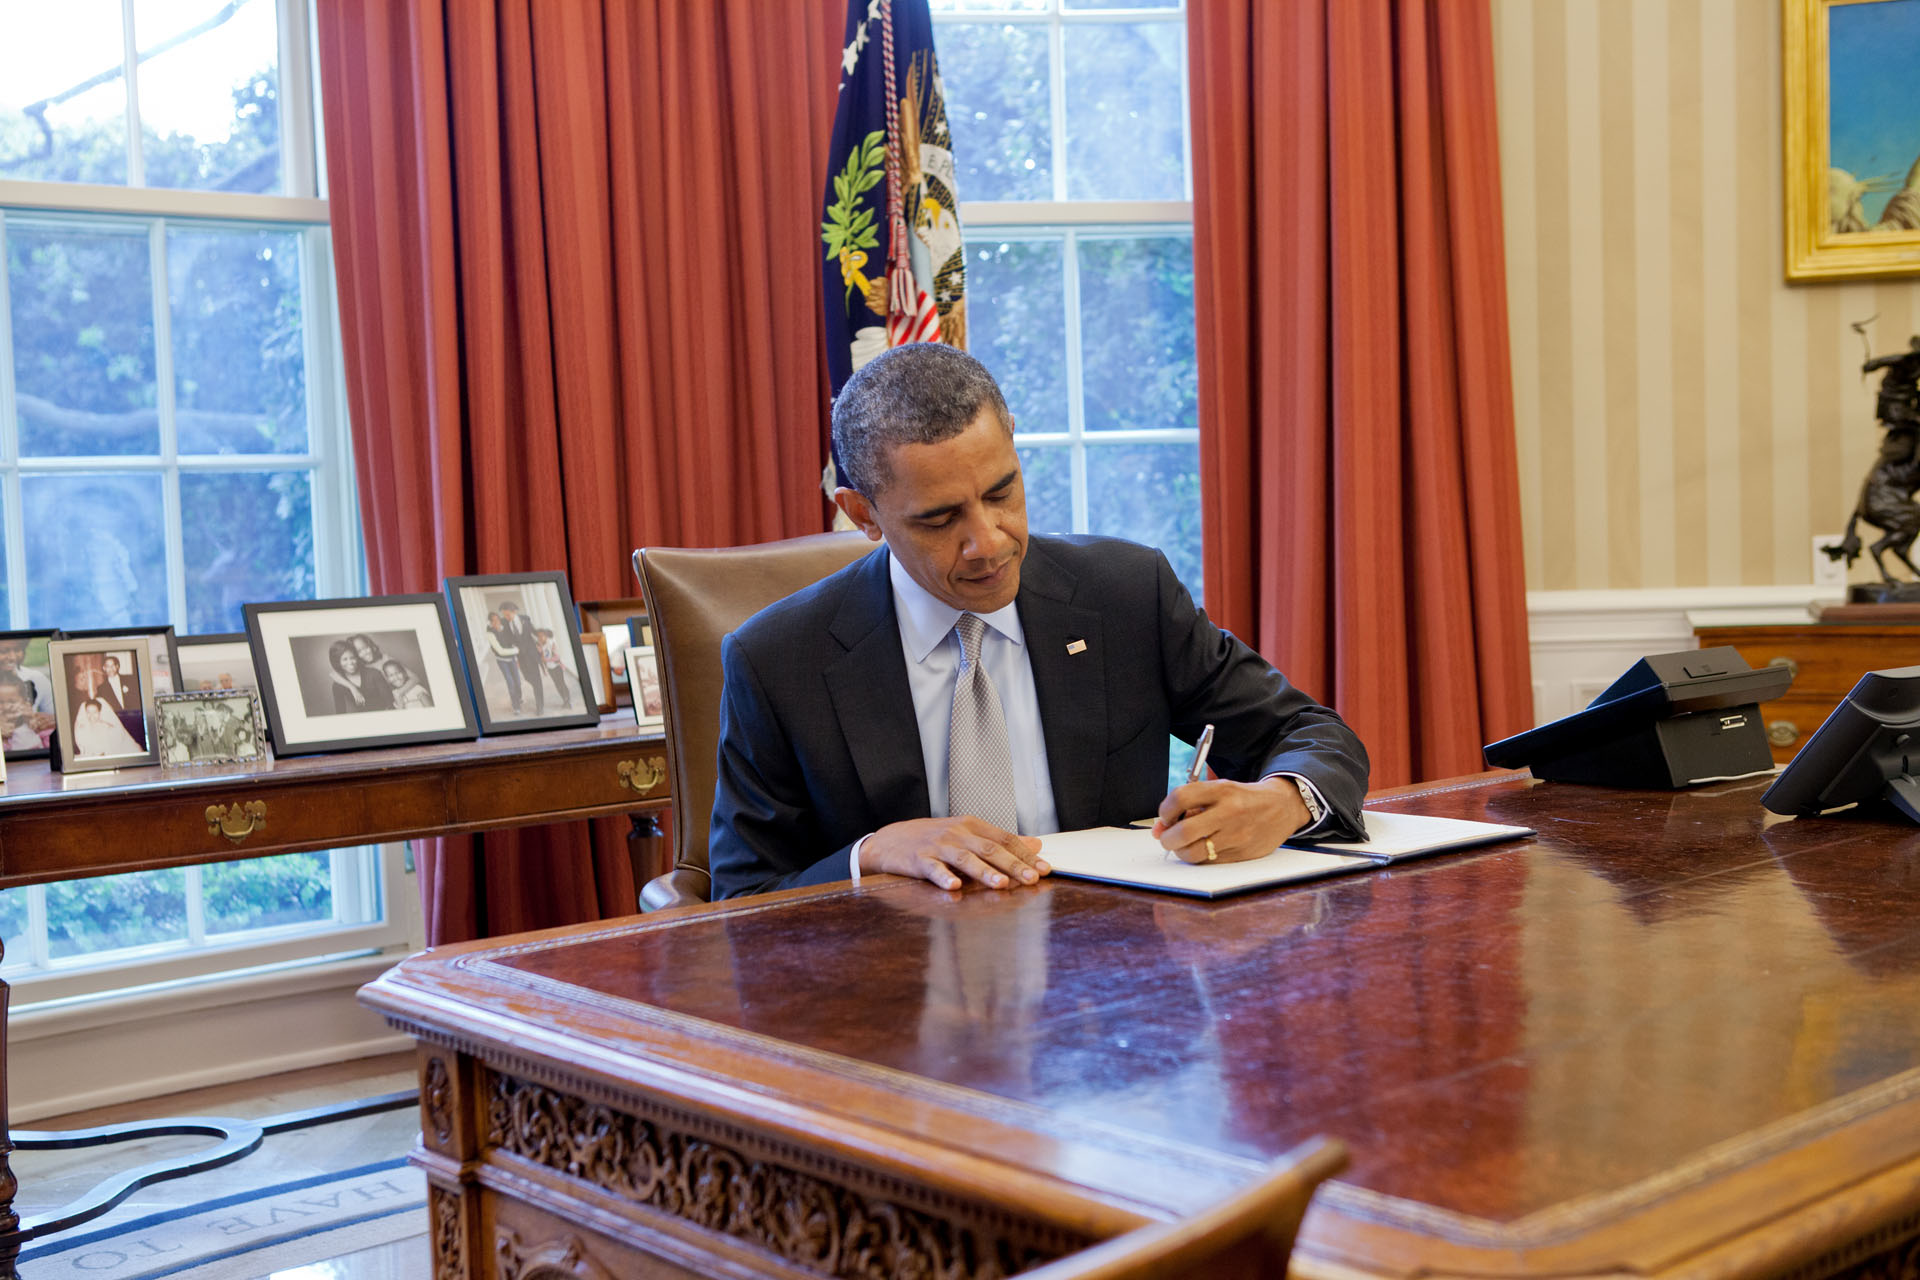 President Barack Obama signs a proclamation regarding the establishment of the Fort Ord National